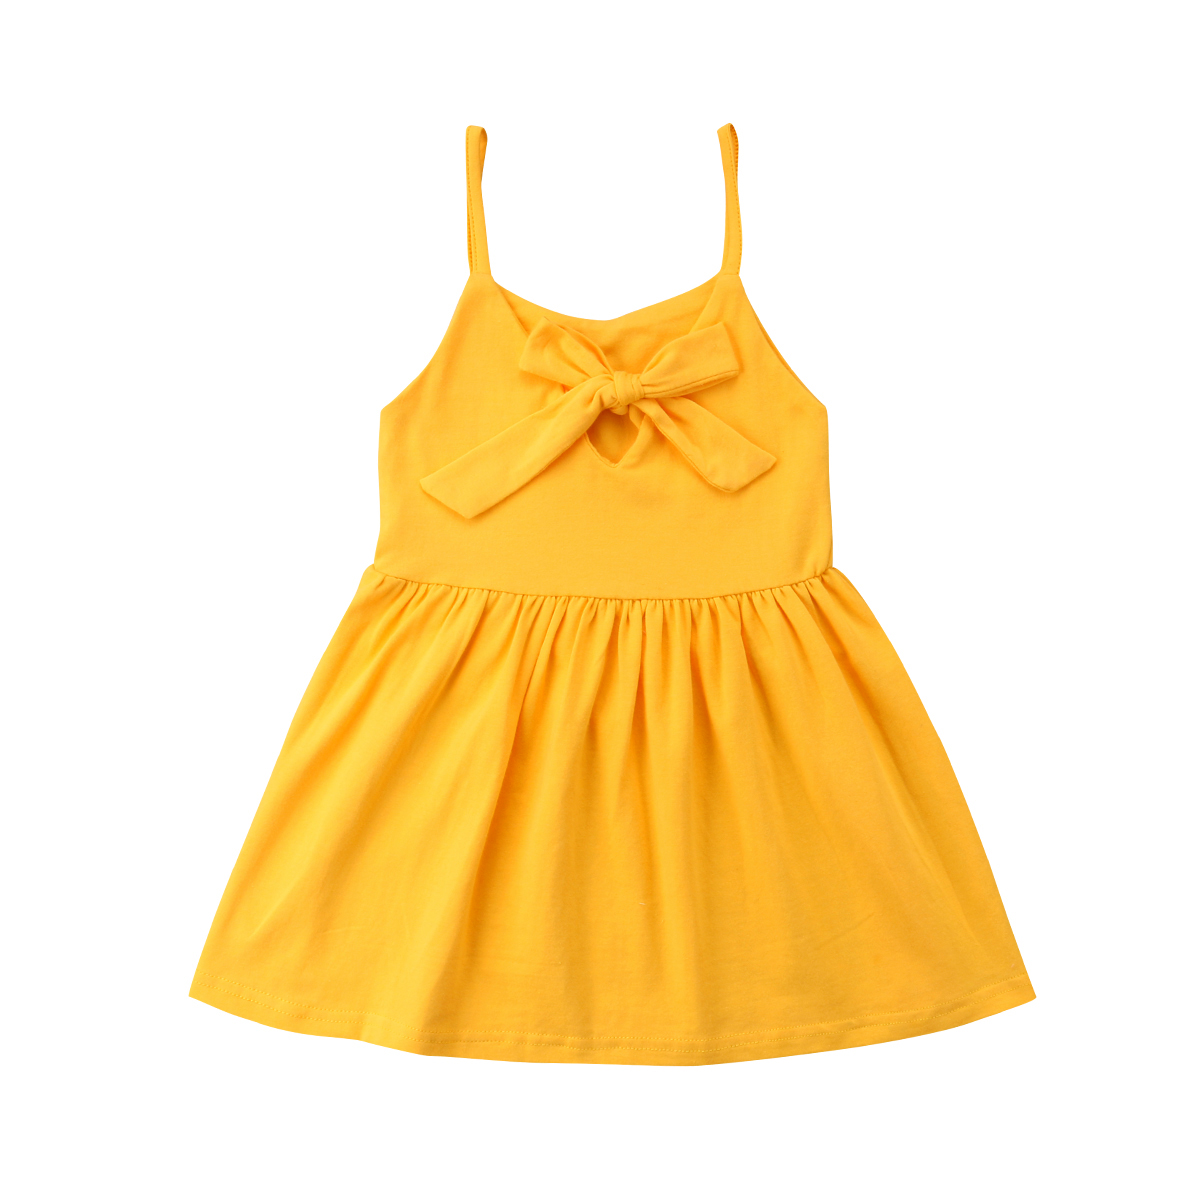 493453f2f2f77 Summer Strap Dress Newborn Infant Baby Girl Bow-knot Princess Party  Sundress Casual Outfits